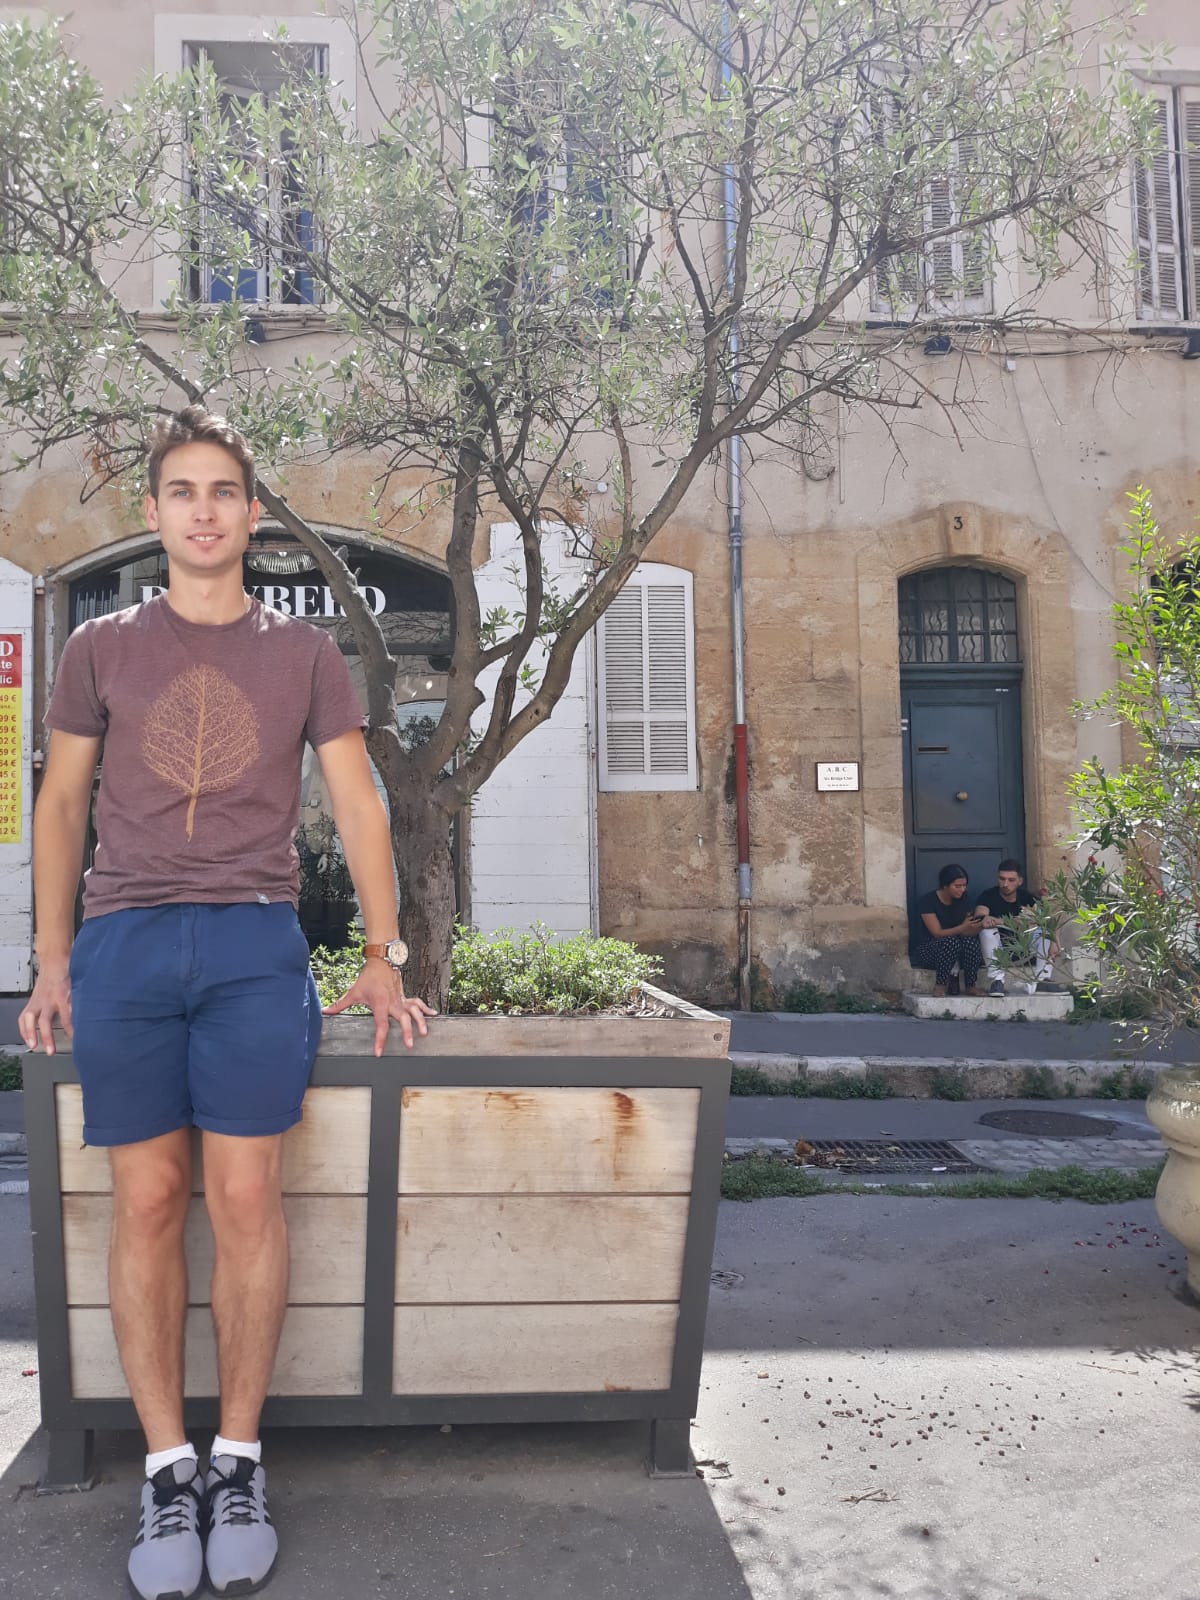 Carlos Blanco walking the streets of Marseilles, a Slow living city